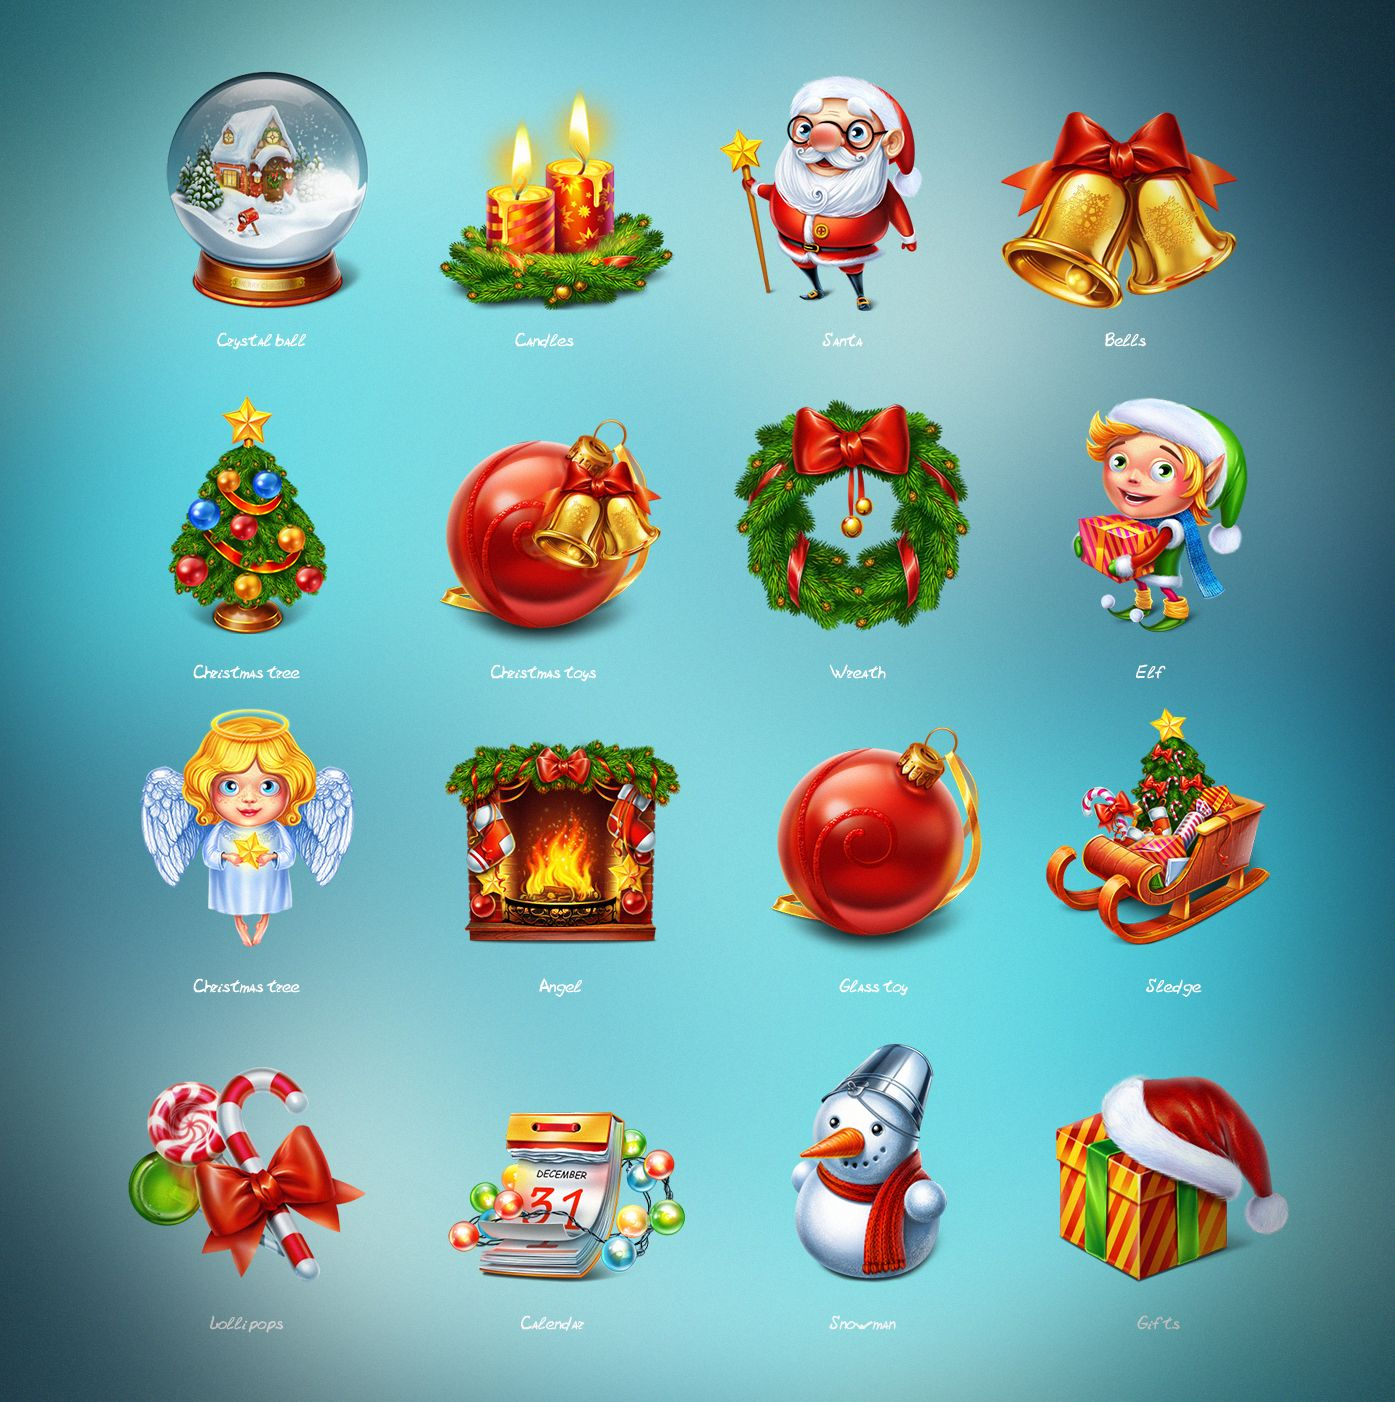 I present to you a Christmas set of 15 cute icons that can